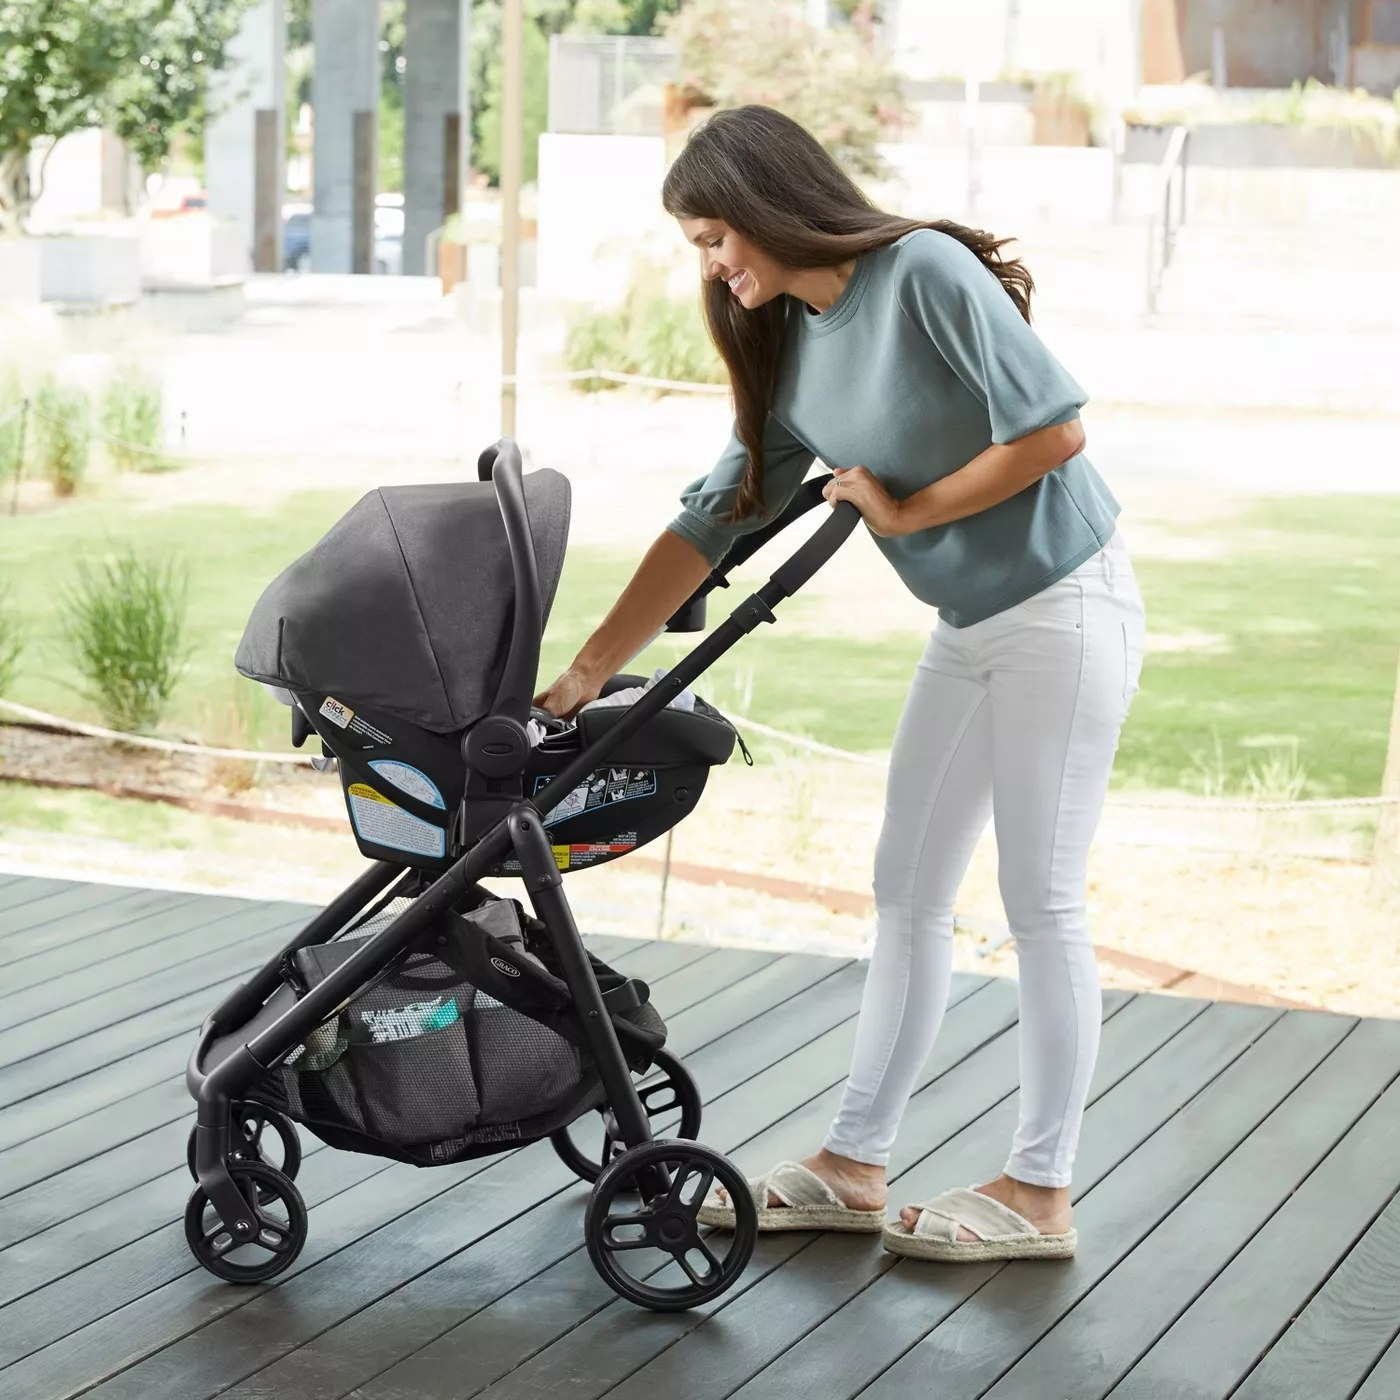 A model with the stroller formatted to carry an infant